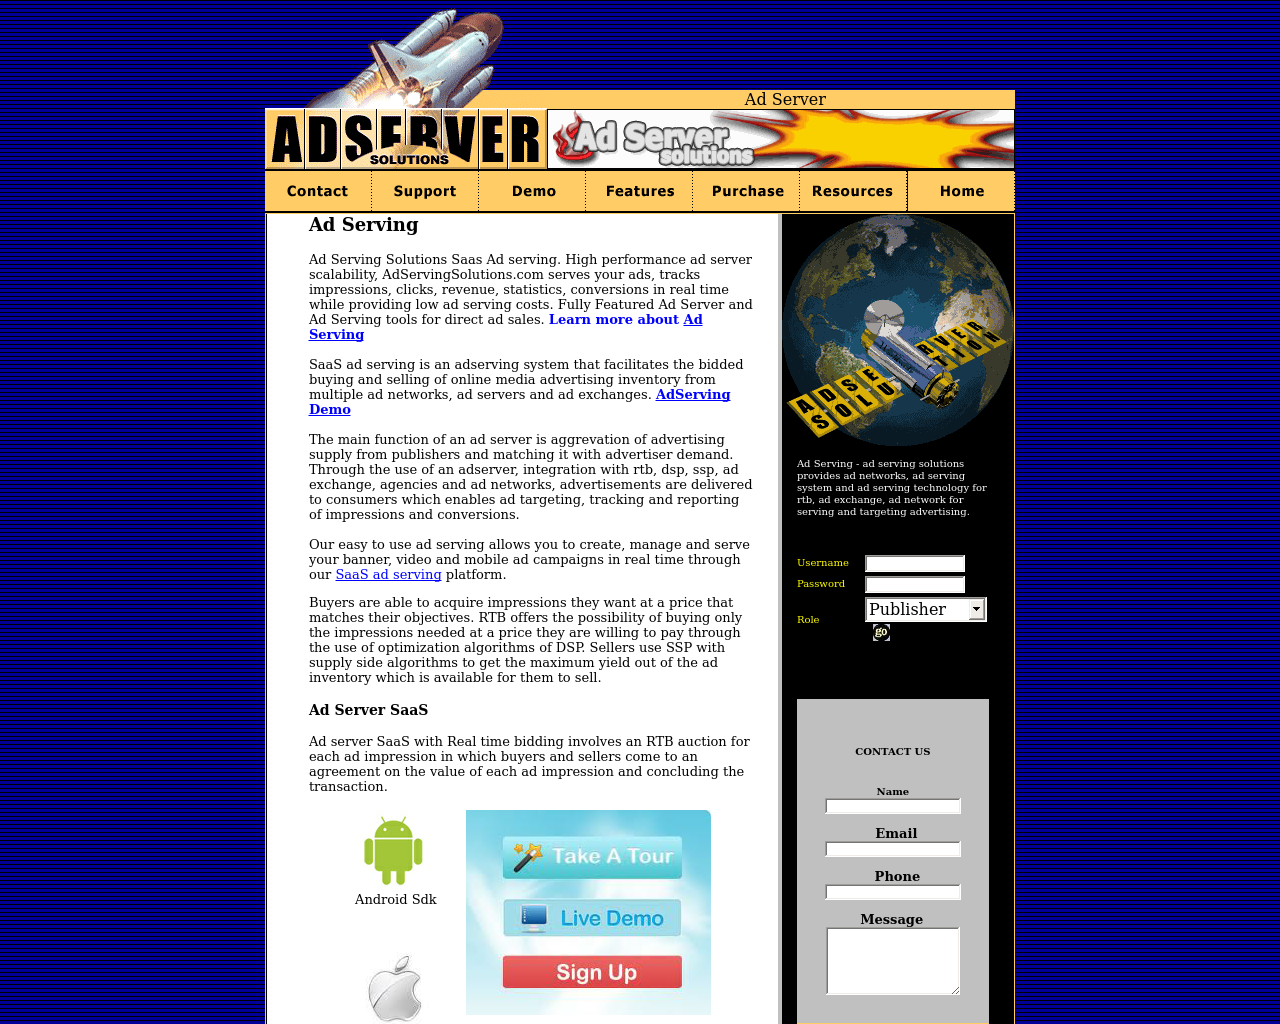 Ad-Server-Solutions-Advertising-Reviews-Pricing